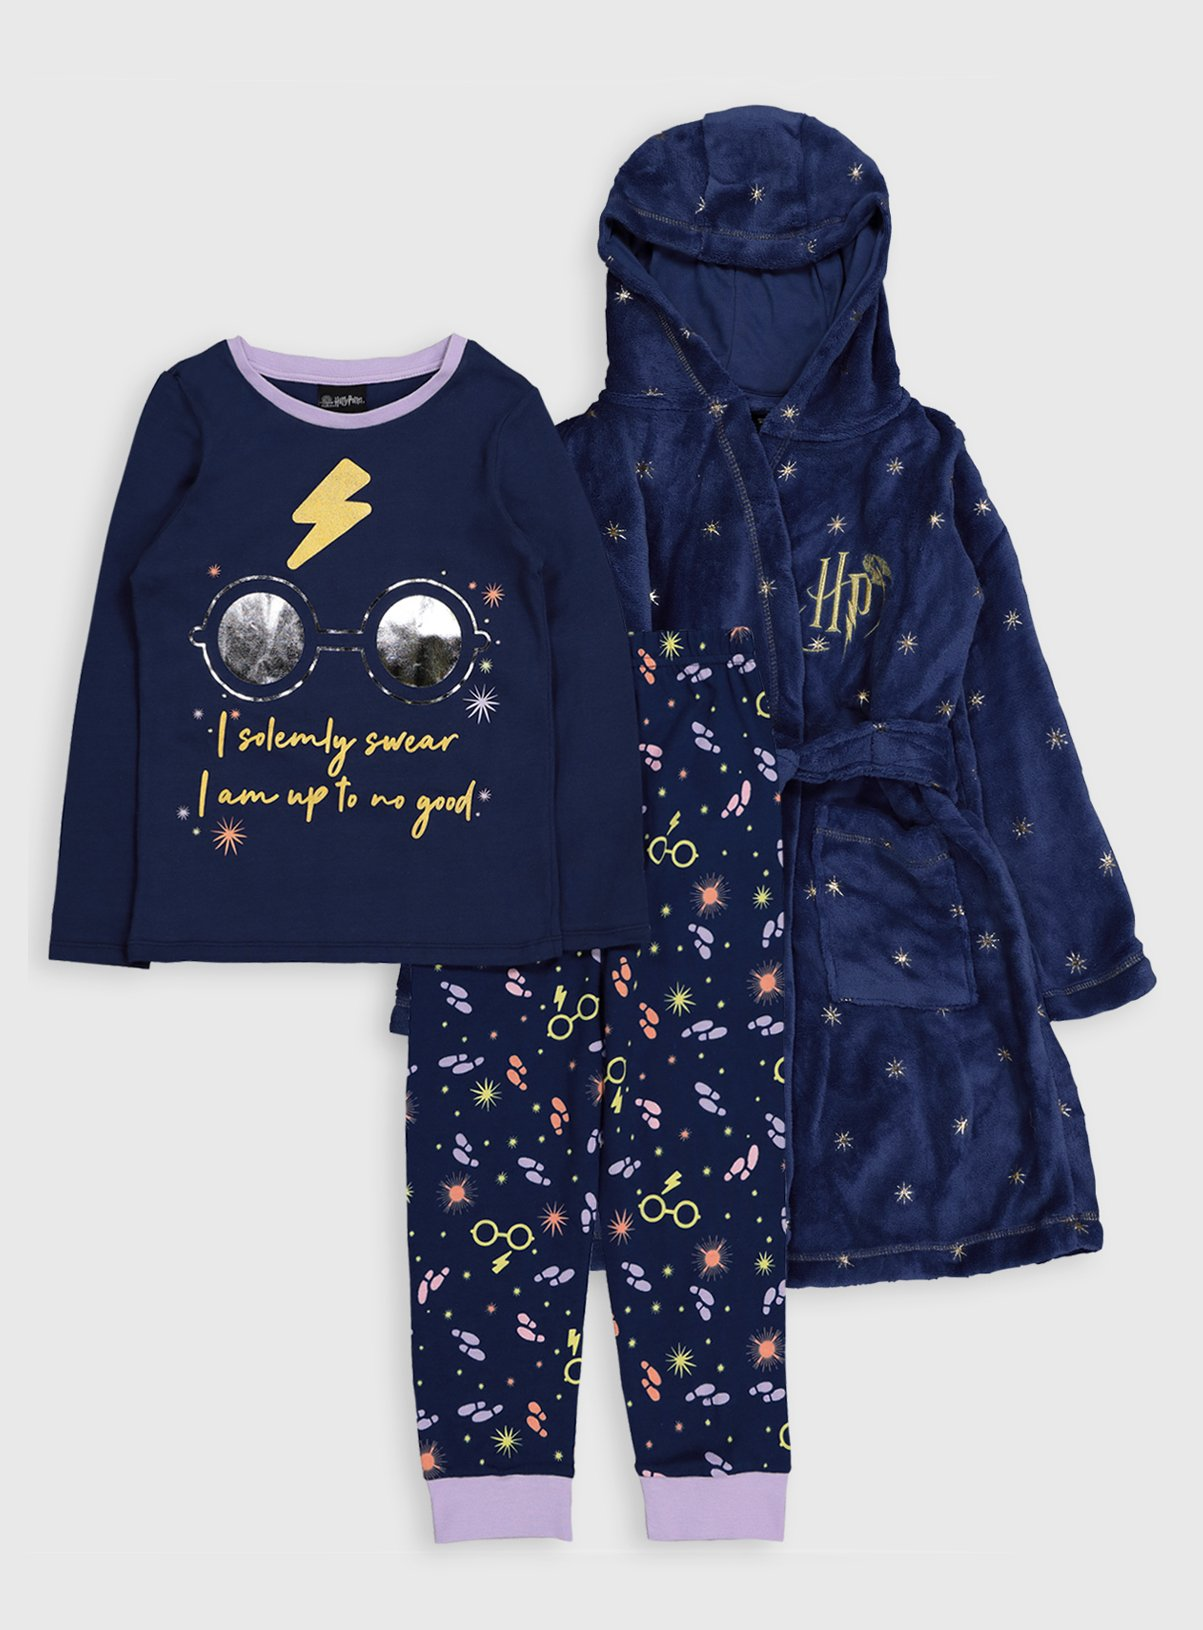 Harry Potter Pyjamas & Dressing Gown - 7-8 years